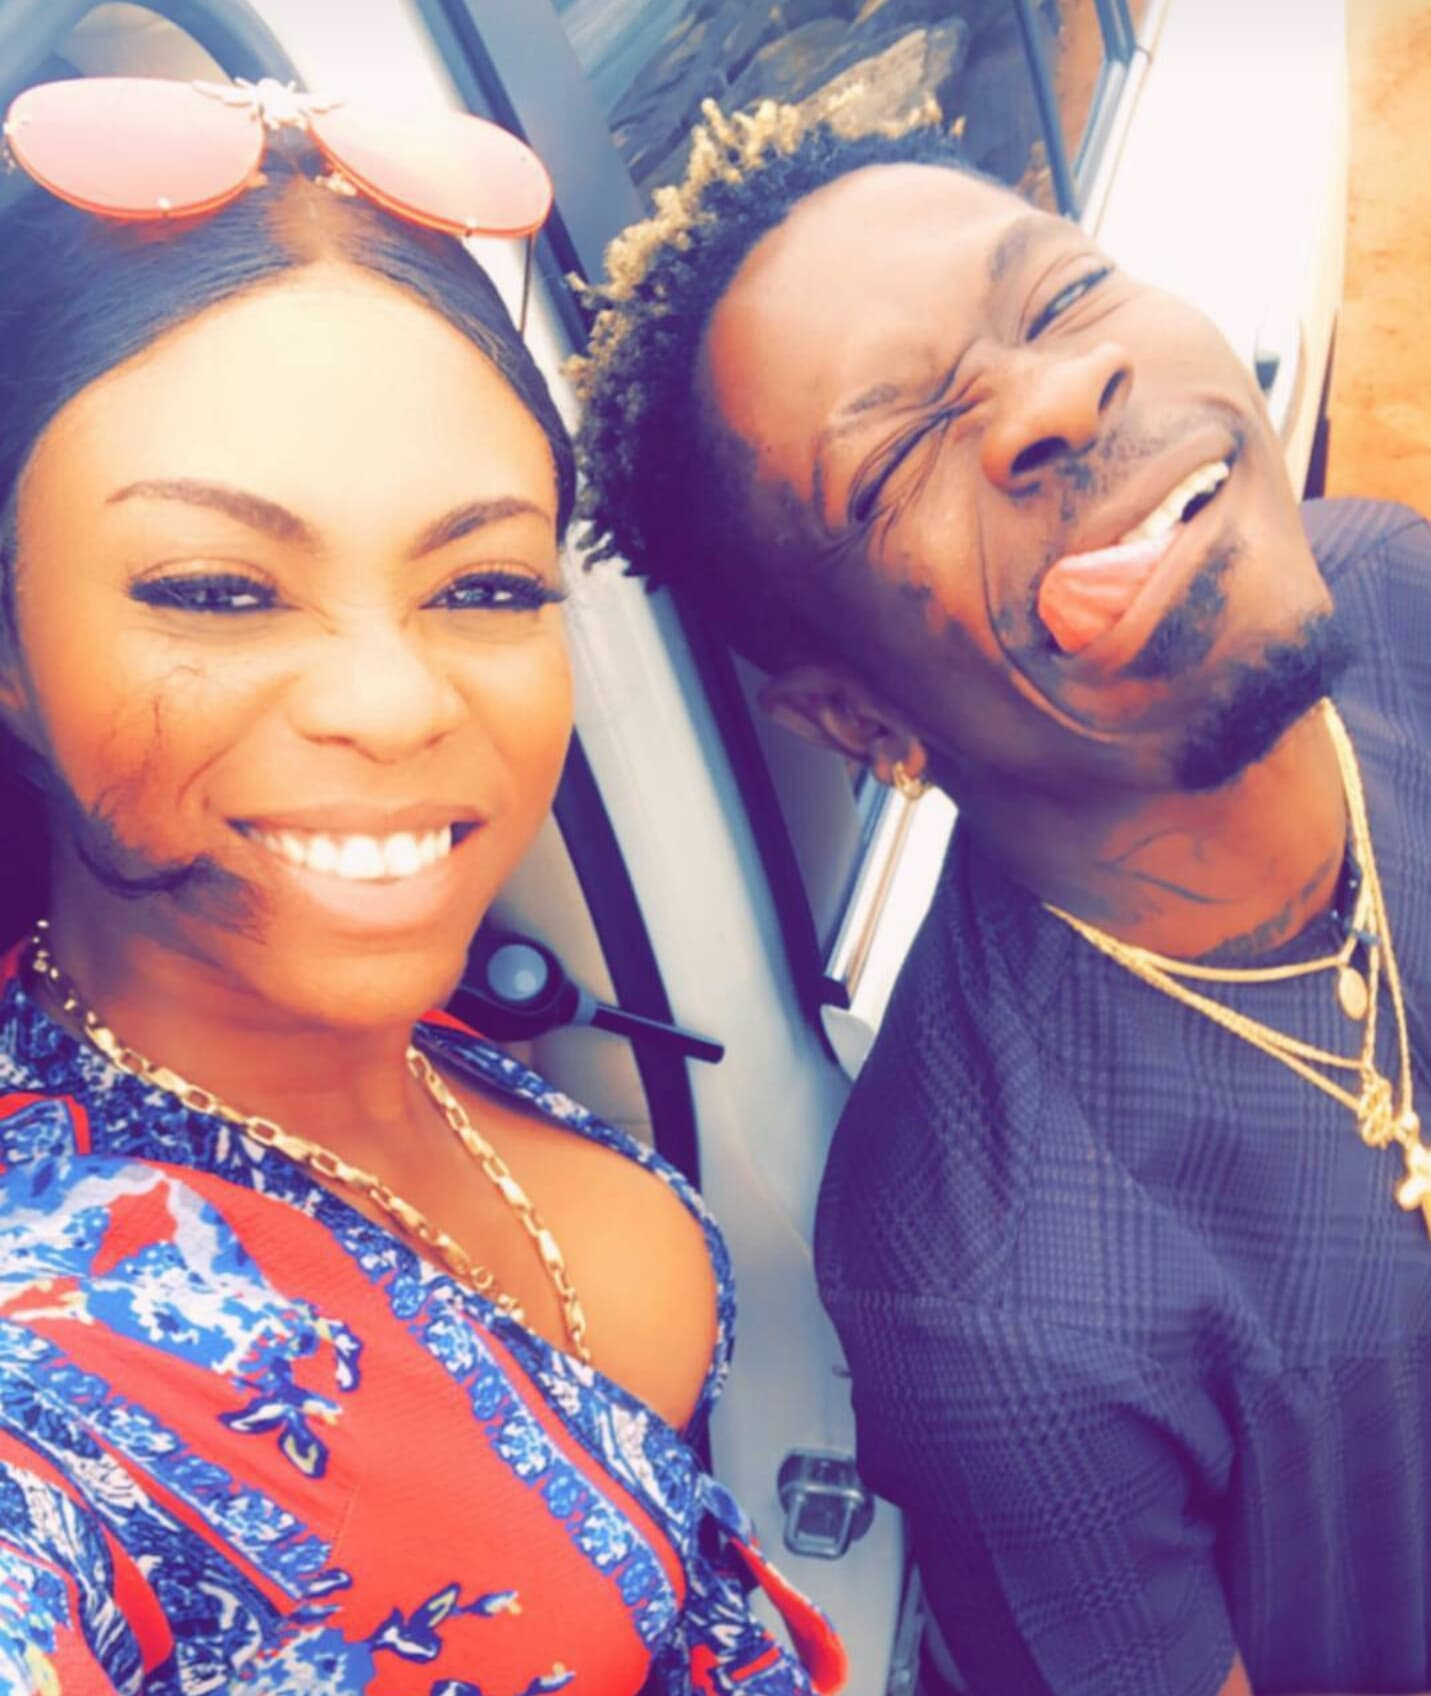 Shatta Wale had only Ghc75 on him when we met - Shatta Michy reveals